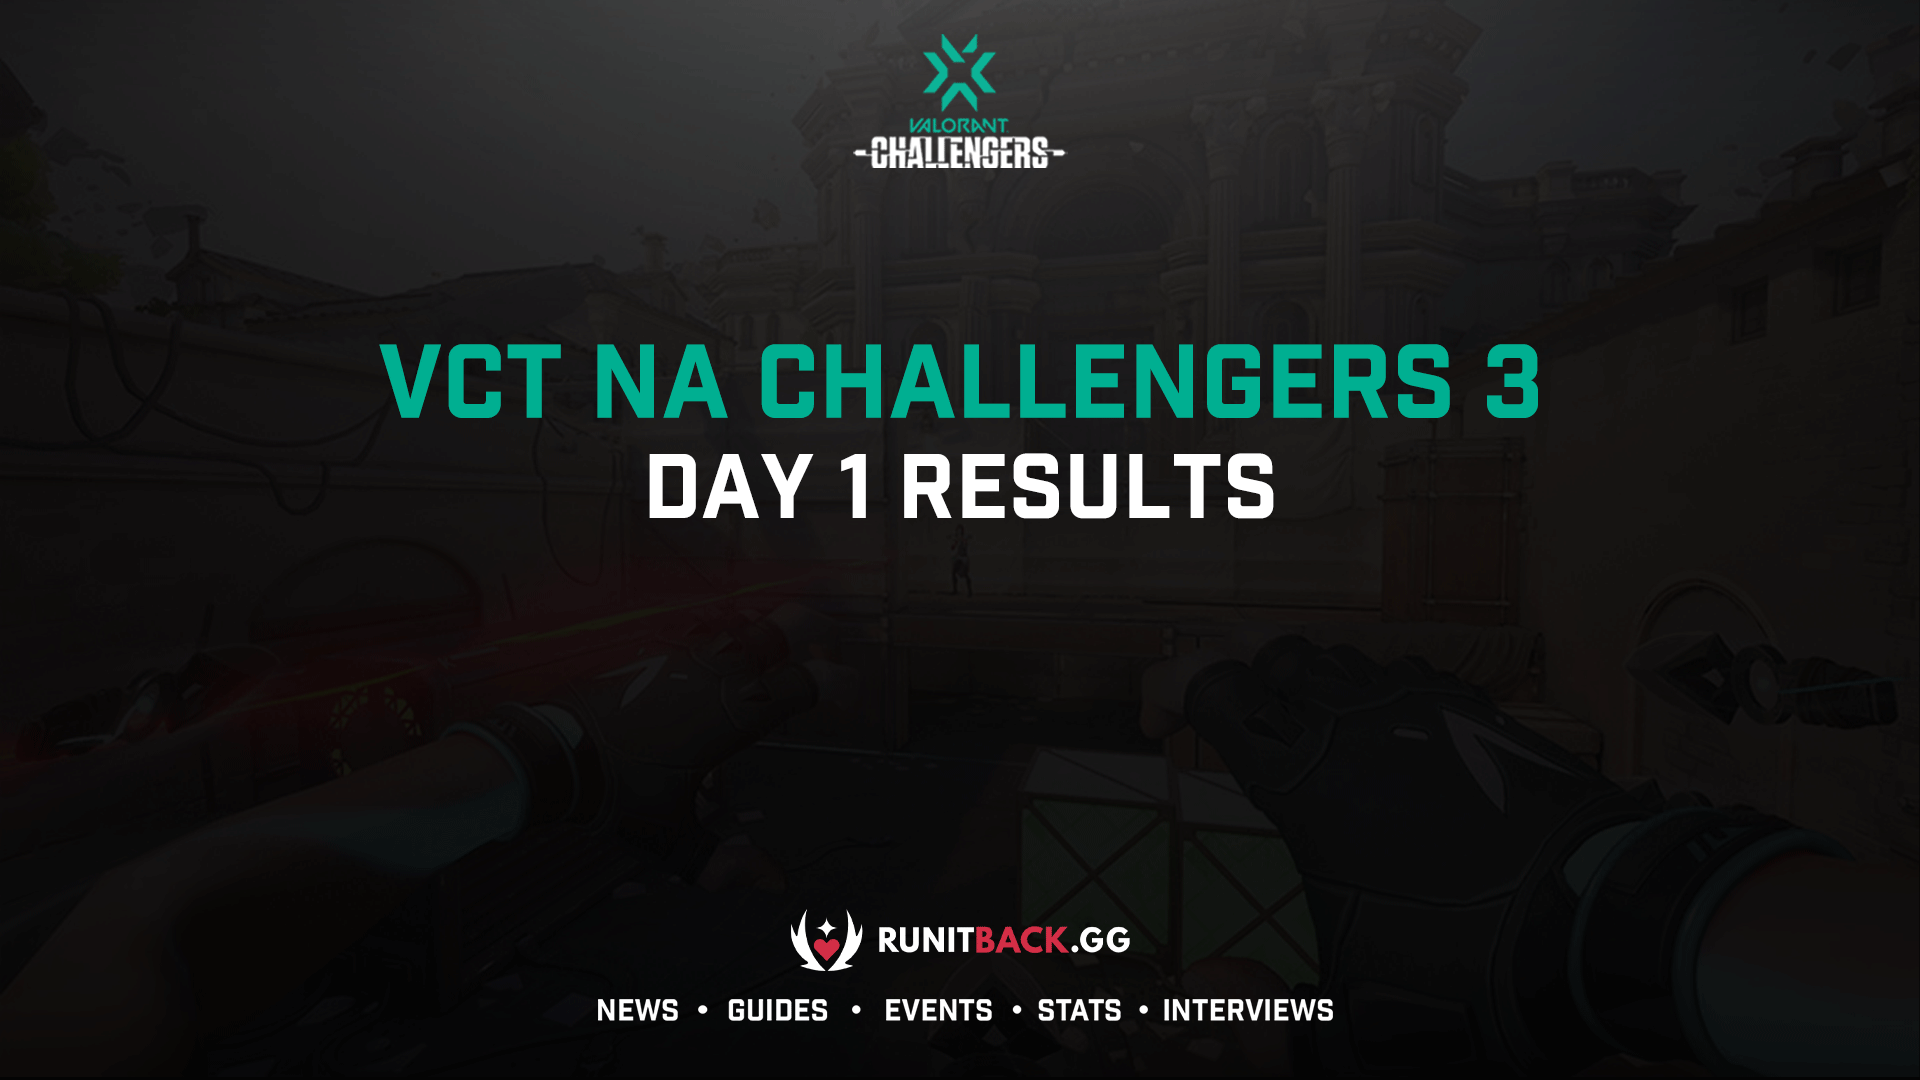 VCT NA Challengers 3 Main Event: Day 1 Results